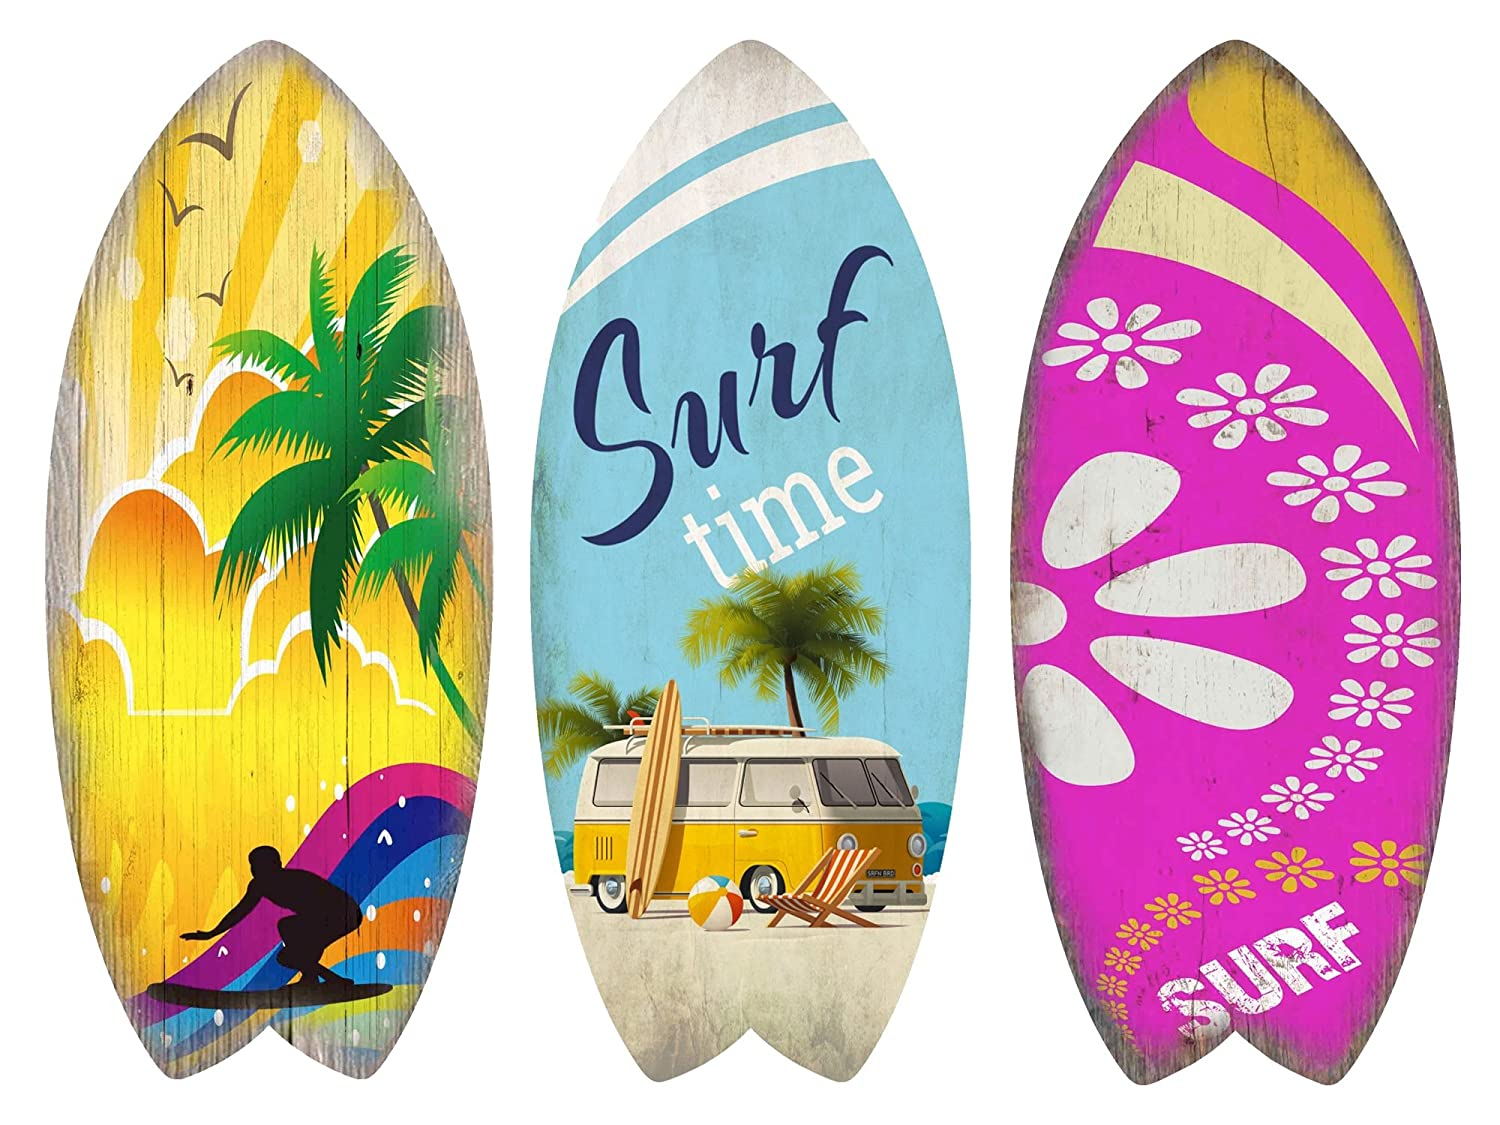 KandyToys Wooden Surf Board Sign Printed Wall Art Decoration Set of 3 Boards VW Camper Van Style Bright Designs Kandy Toys